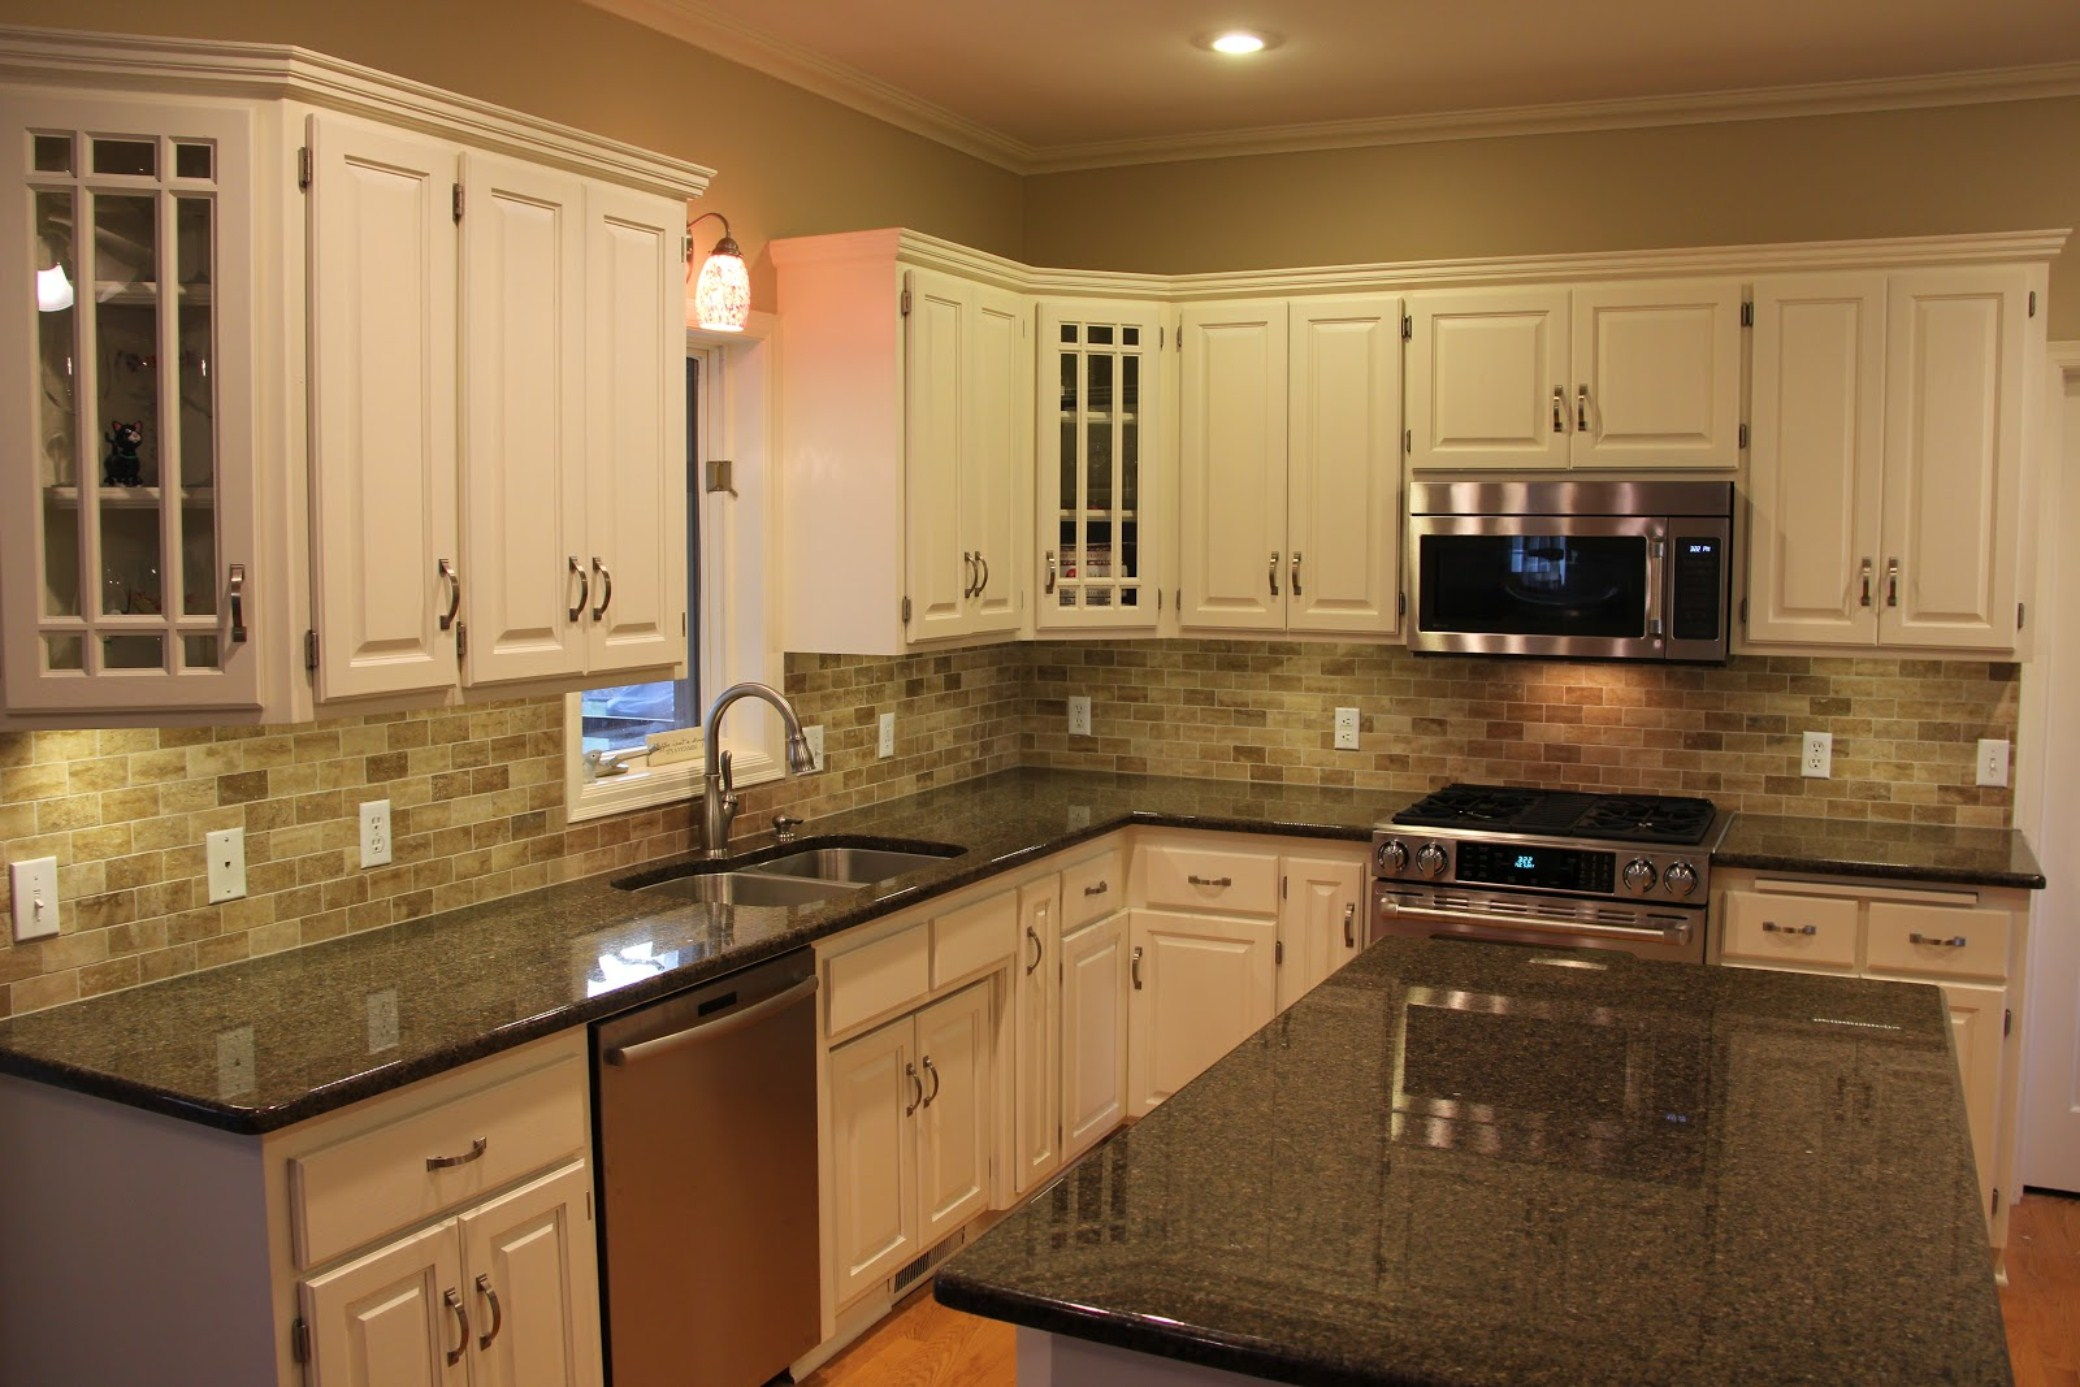 kitchen-white-cabinets-dark-countertops-photo-13